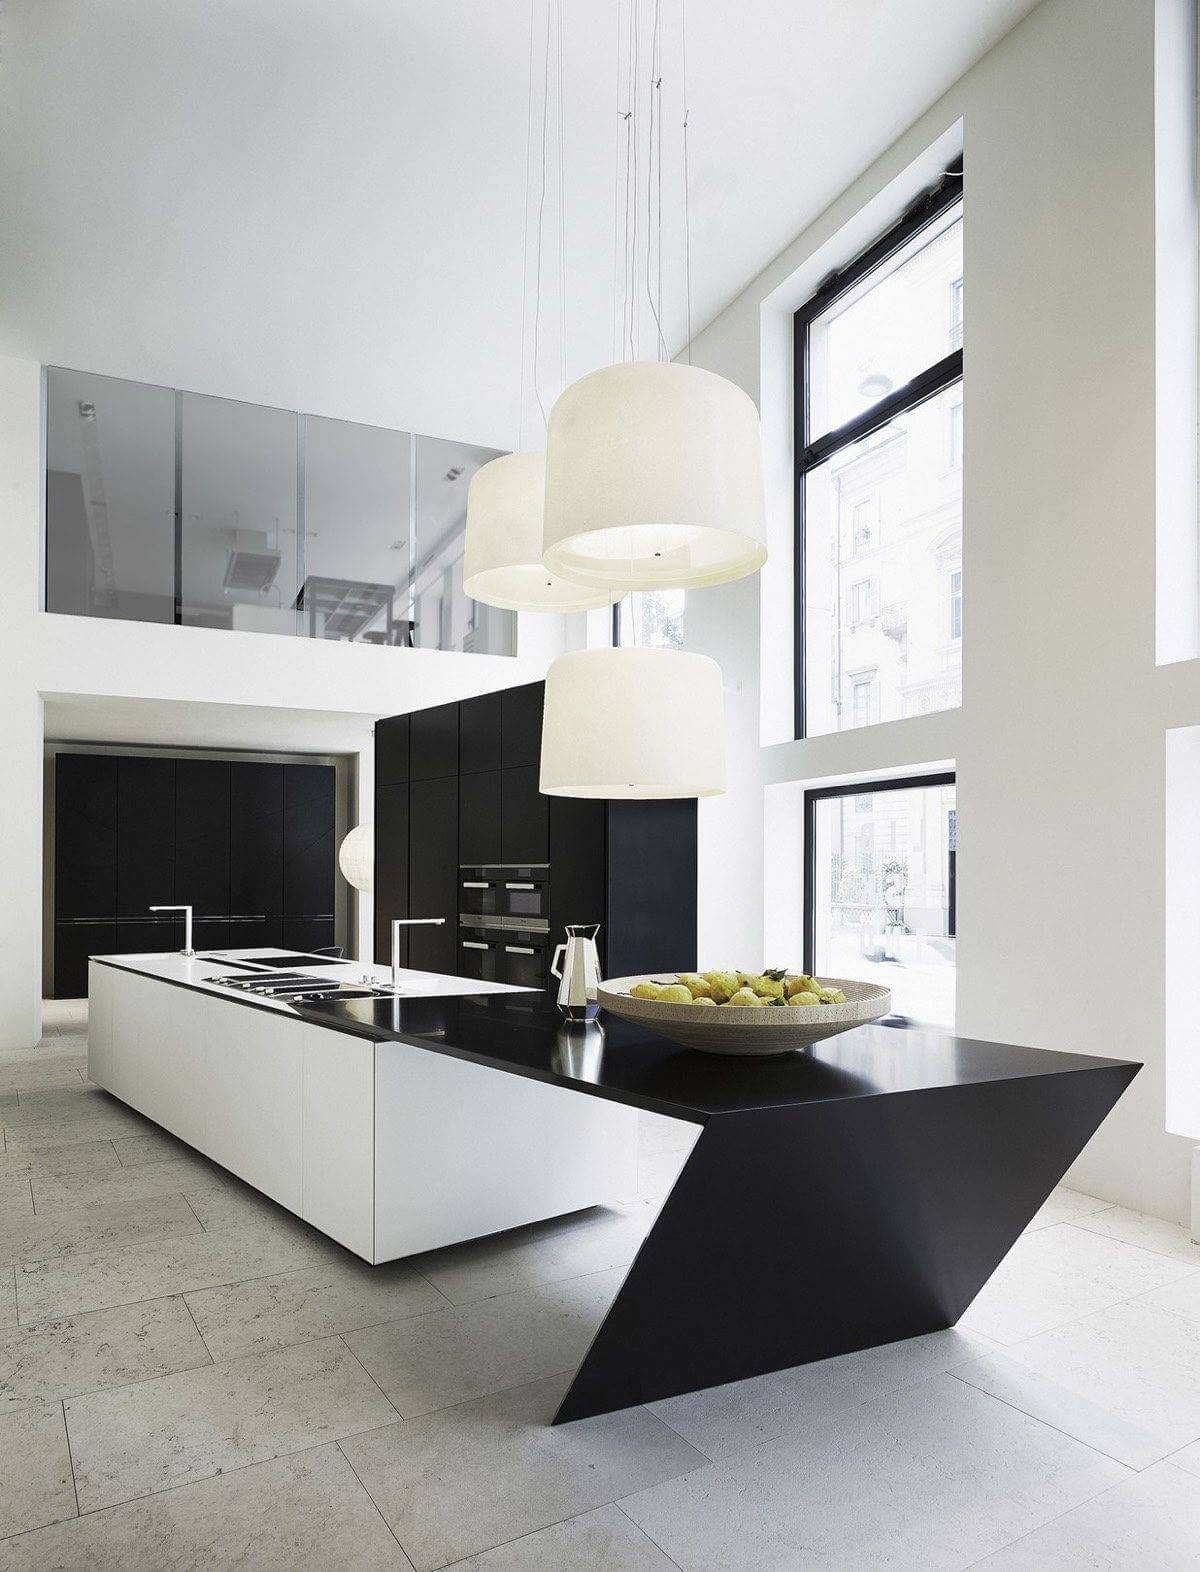 sharp-geometric-kitchen-island